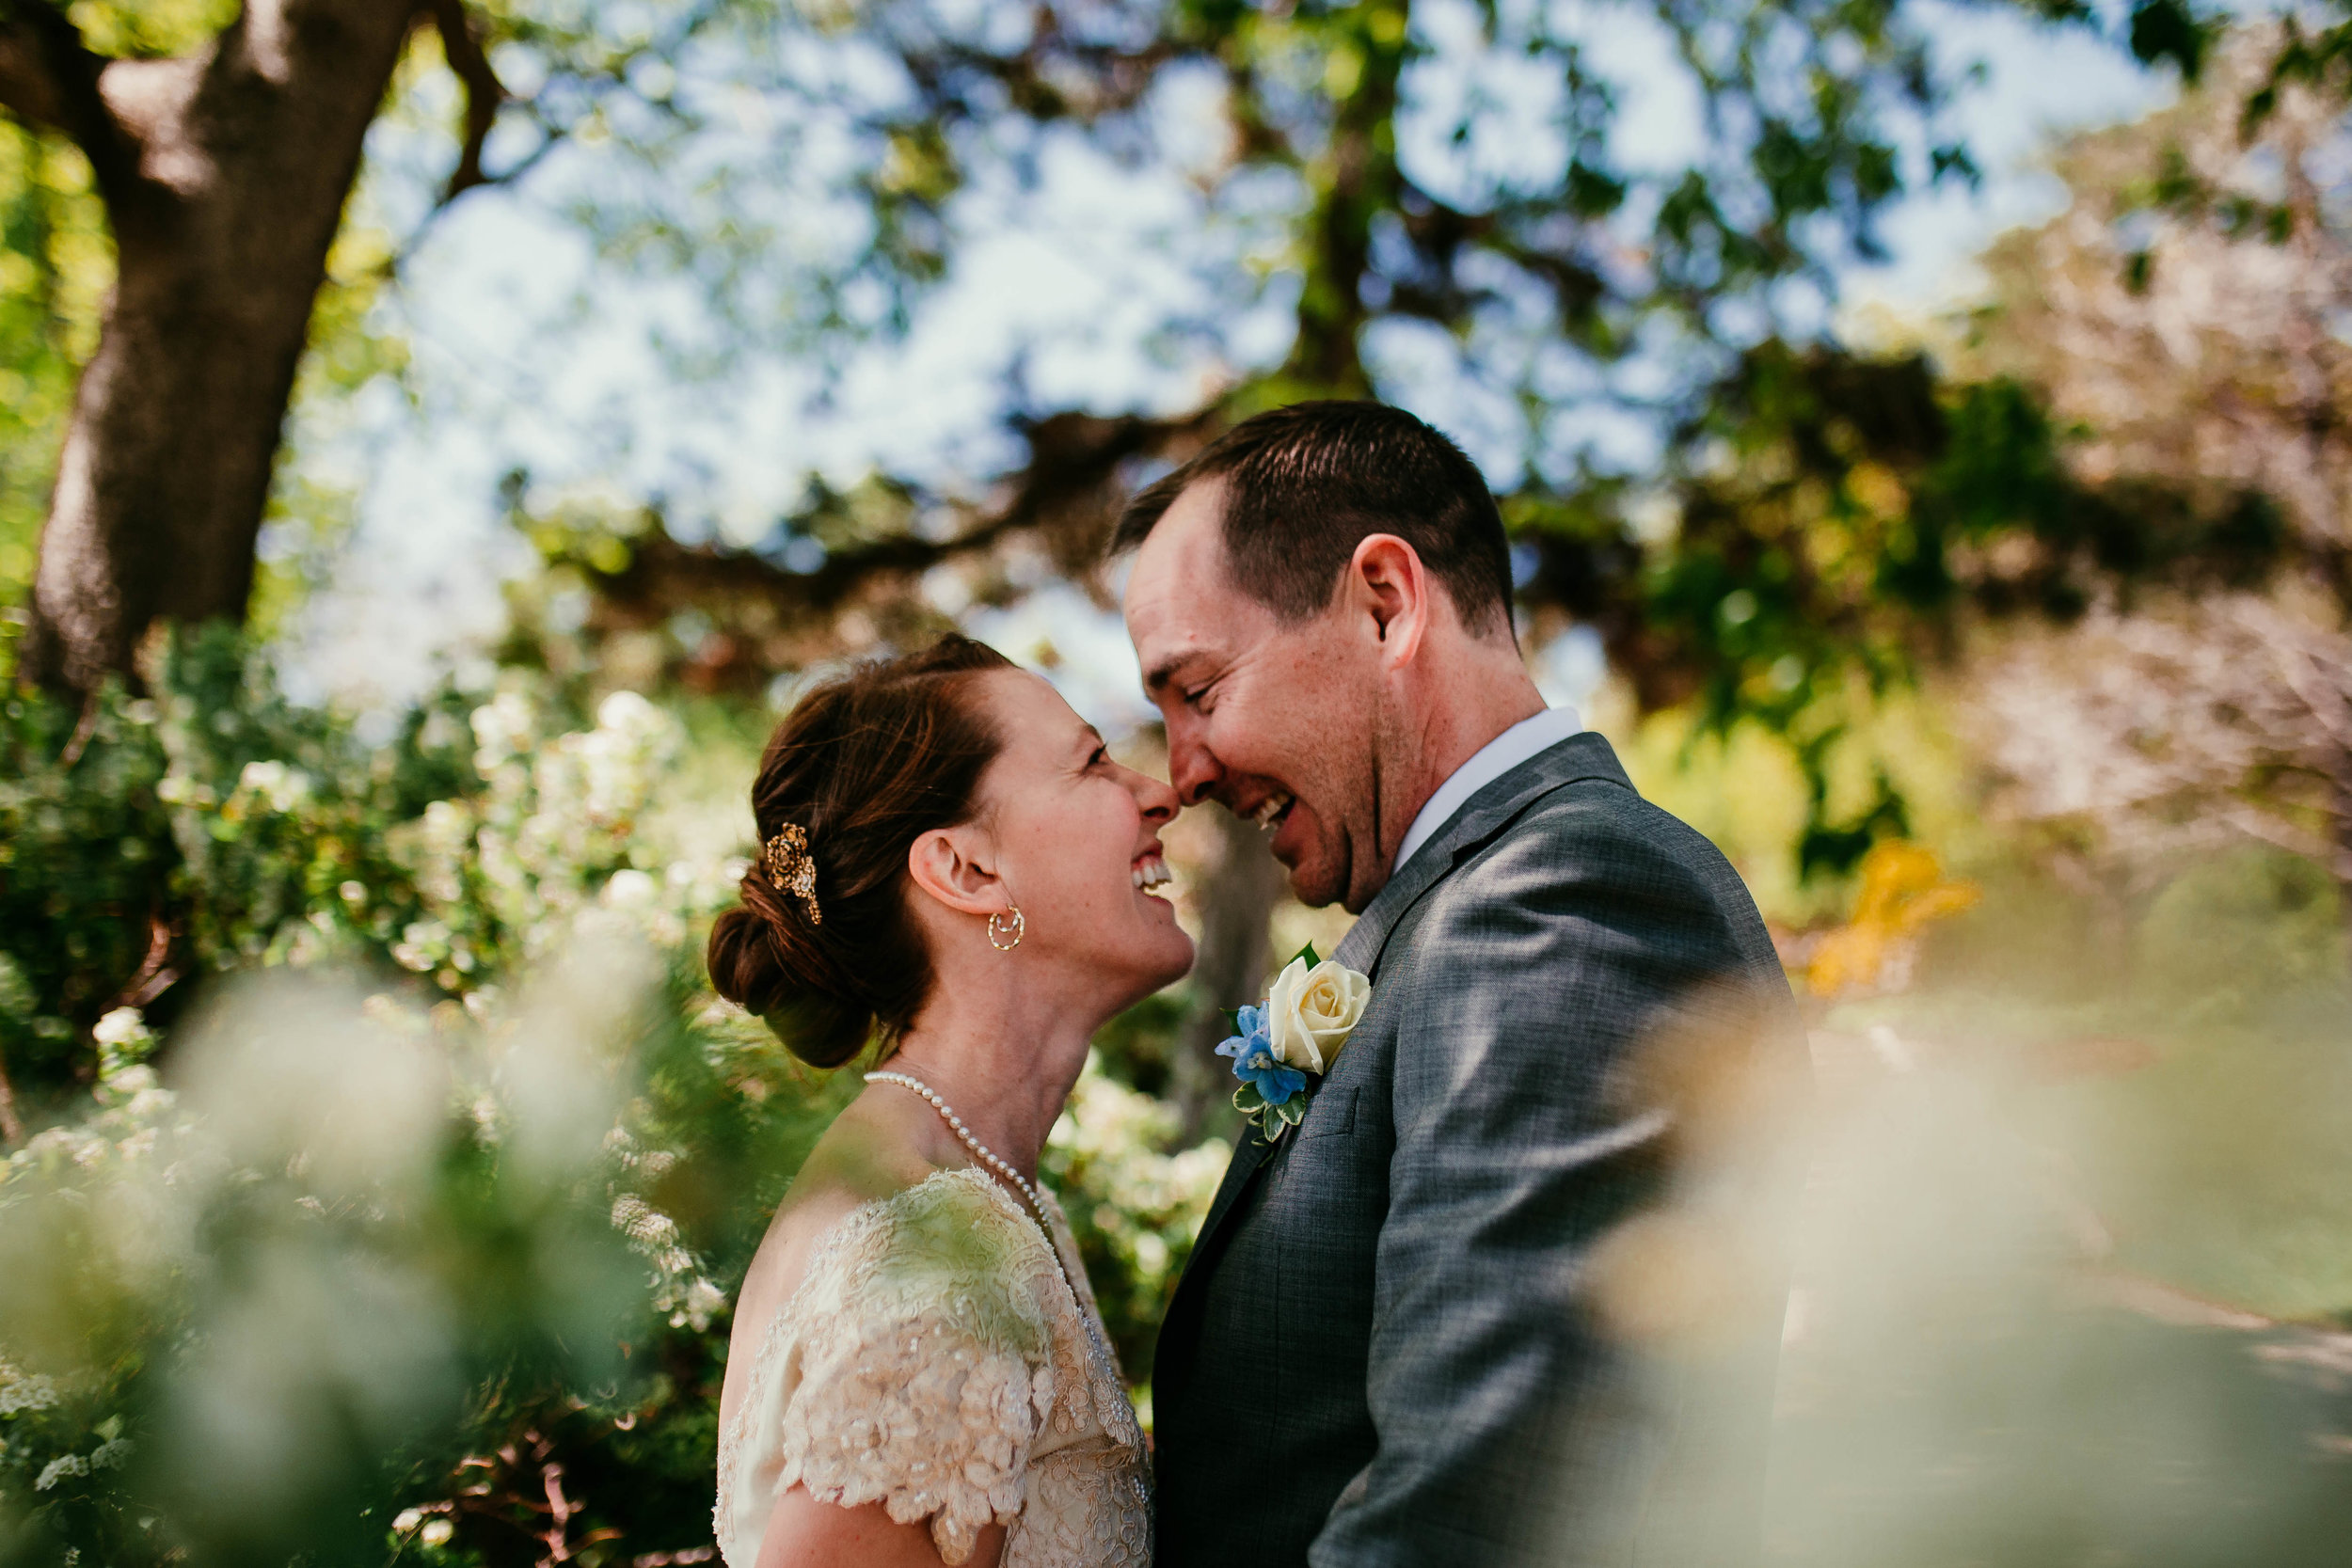 Bert & Lauren's North Kansas City Spring Wedding | Hannahill Photography | Raleigh Durham Photographer | North Carolina Wedding Photography | Family Photographer | Wedding photographer | The couple laughs together amidst spring bushes